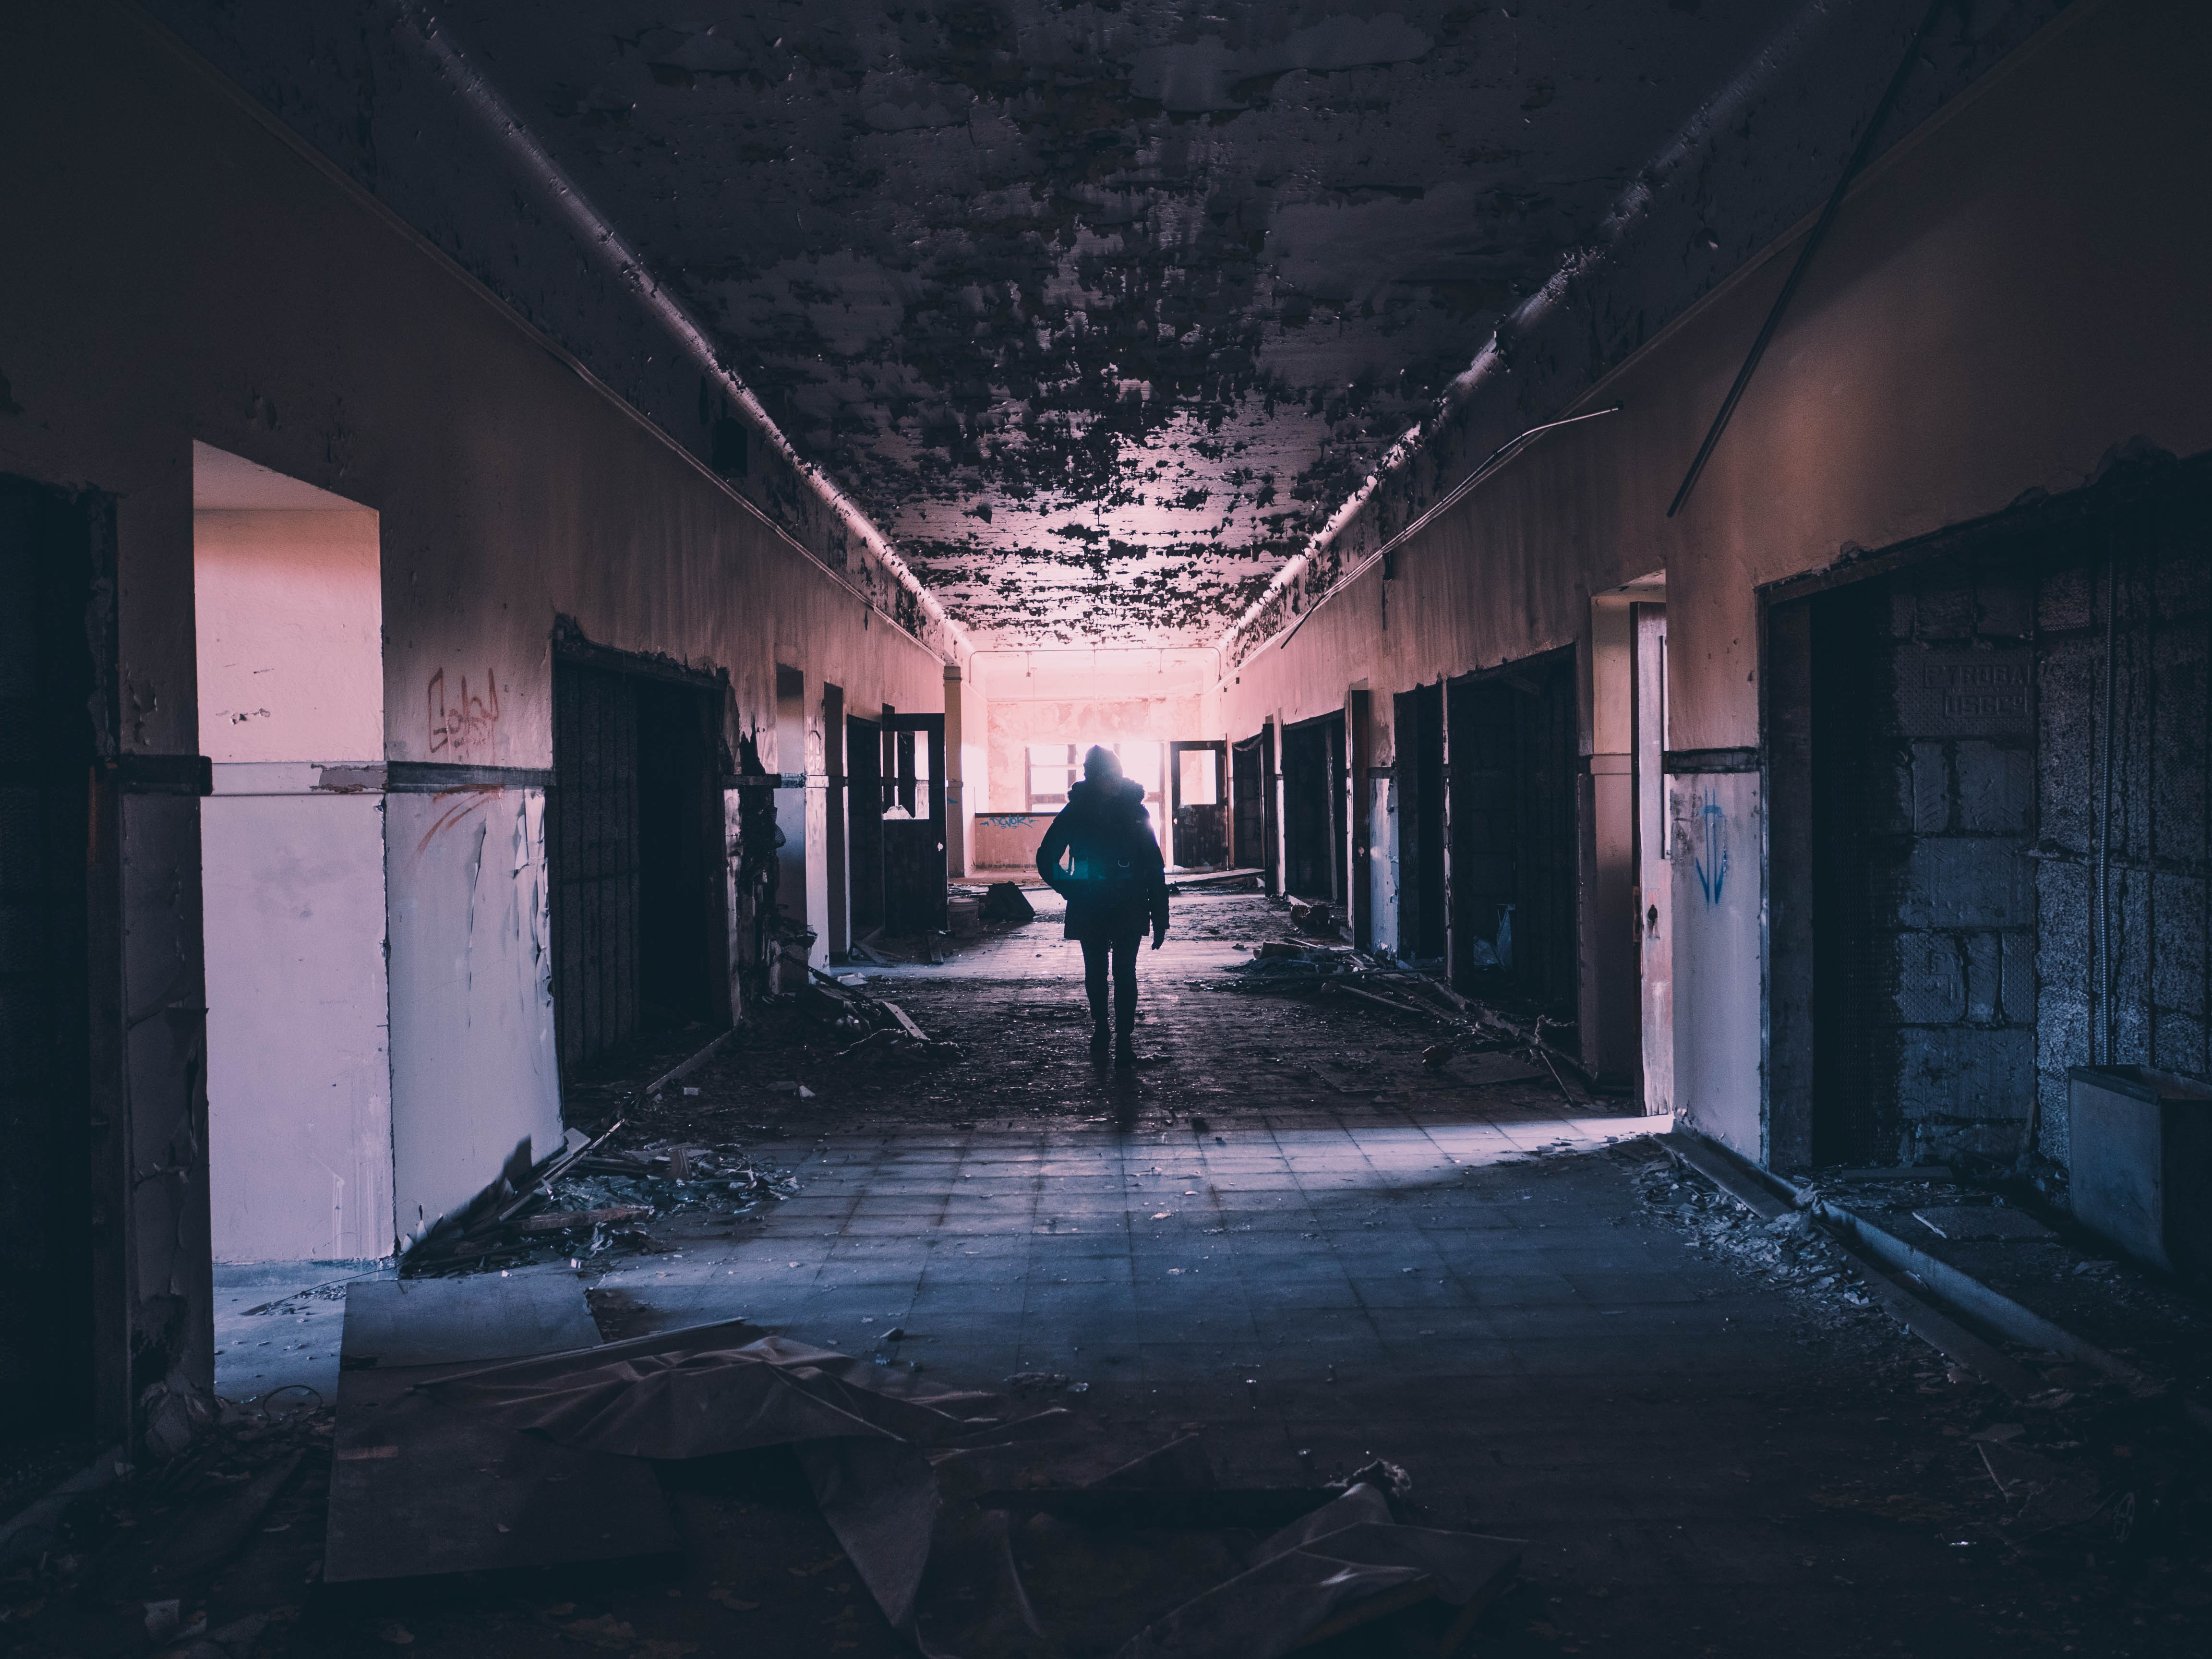 A person walking inside a dimly lit Detroit building at night